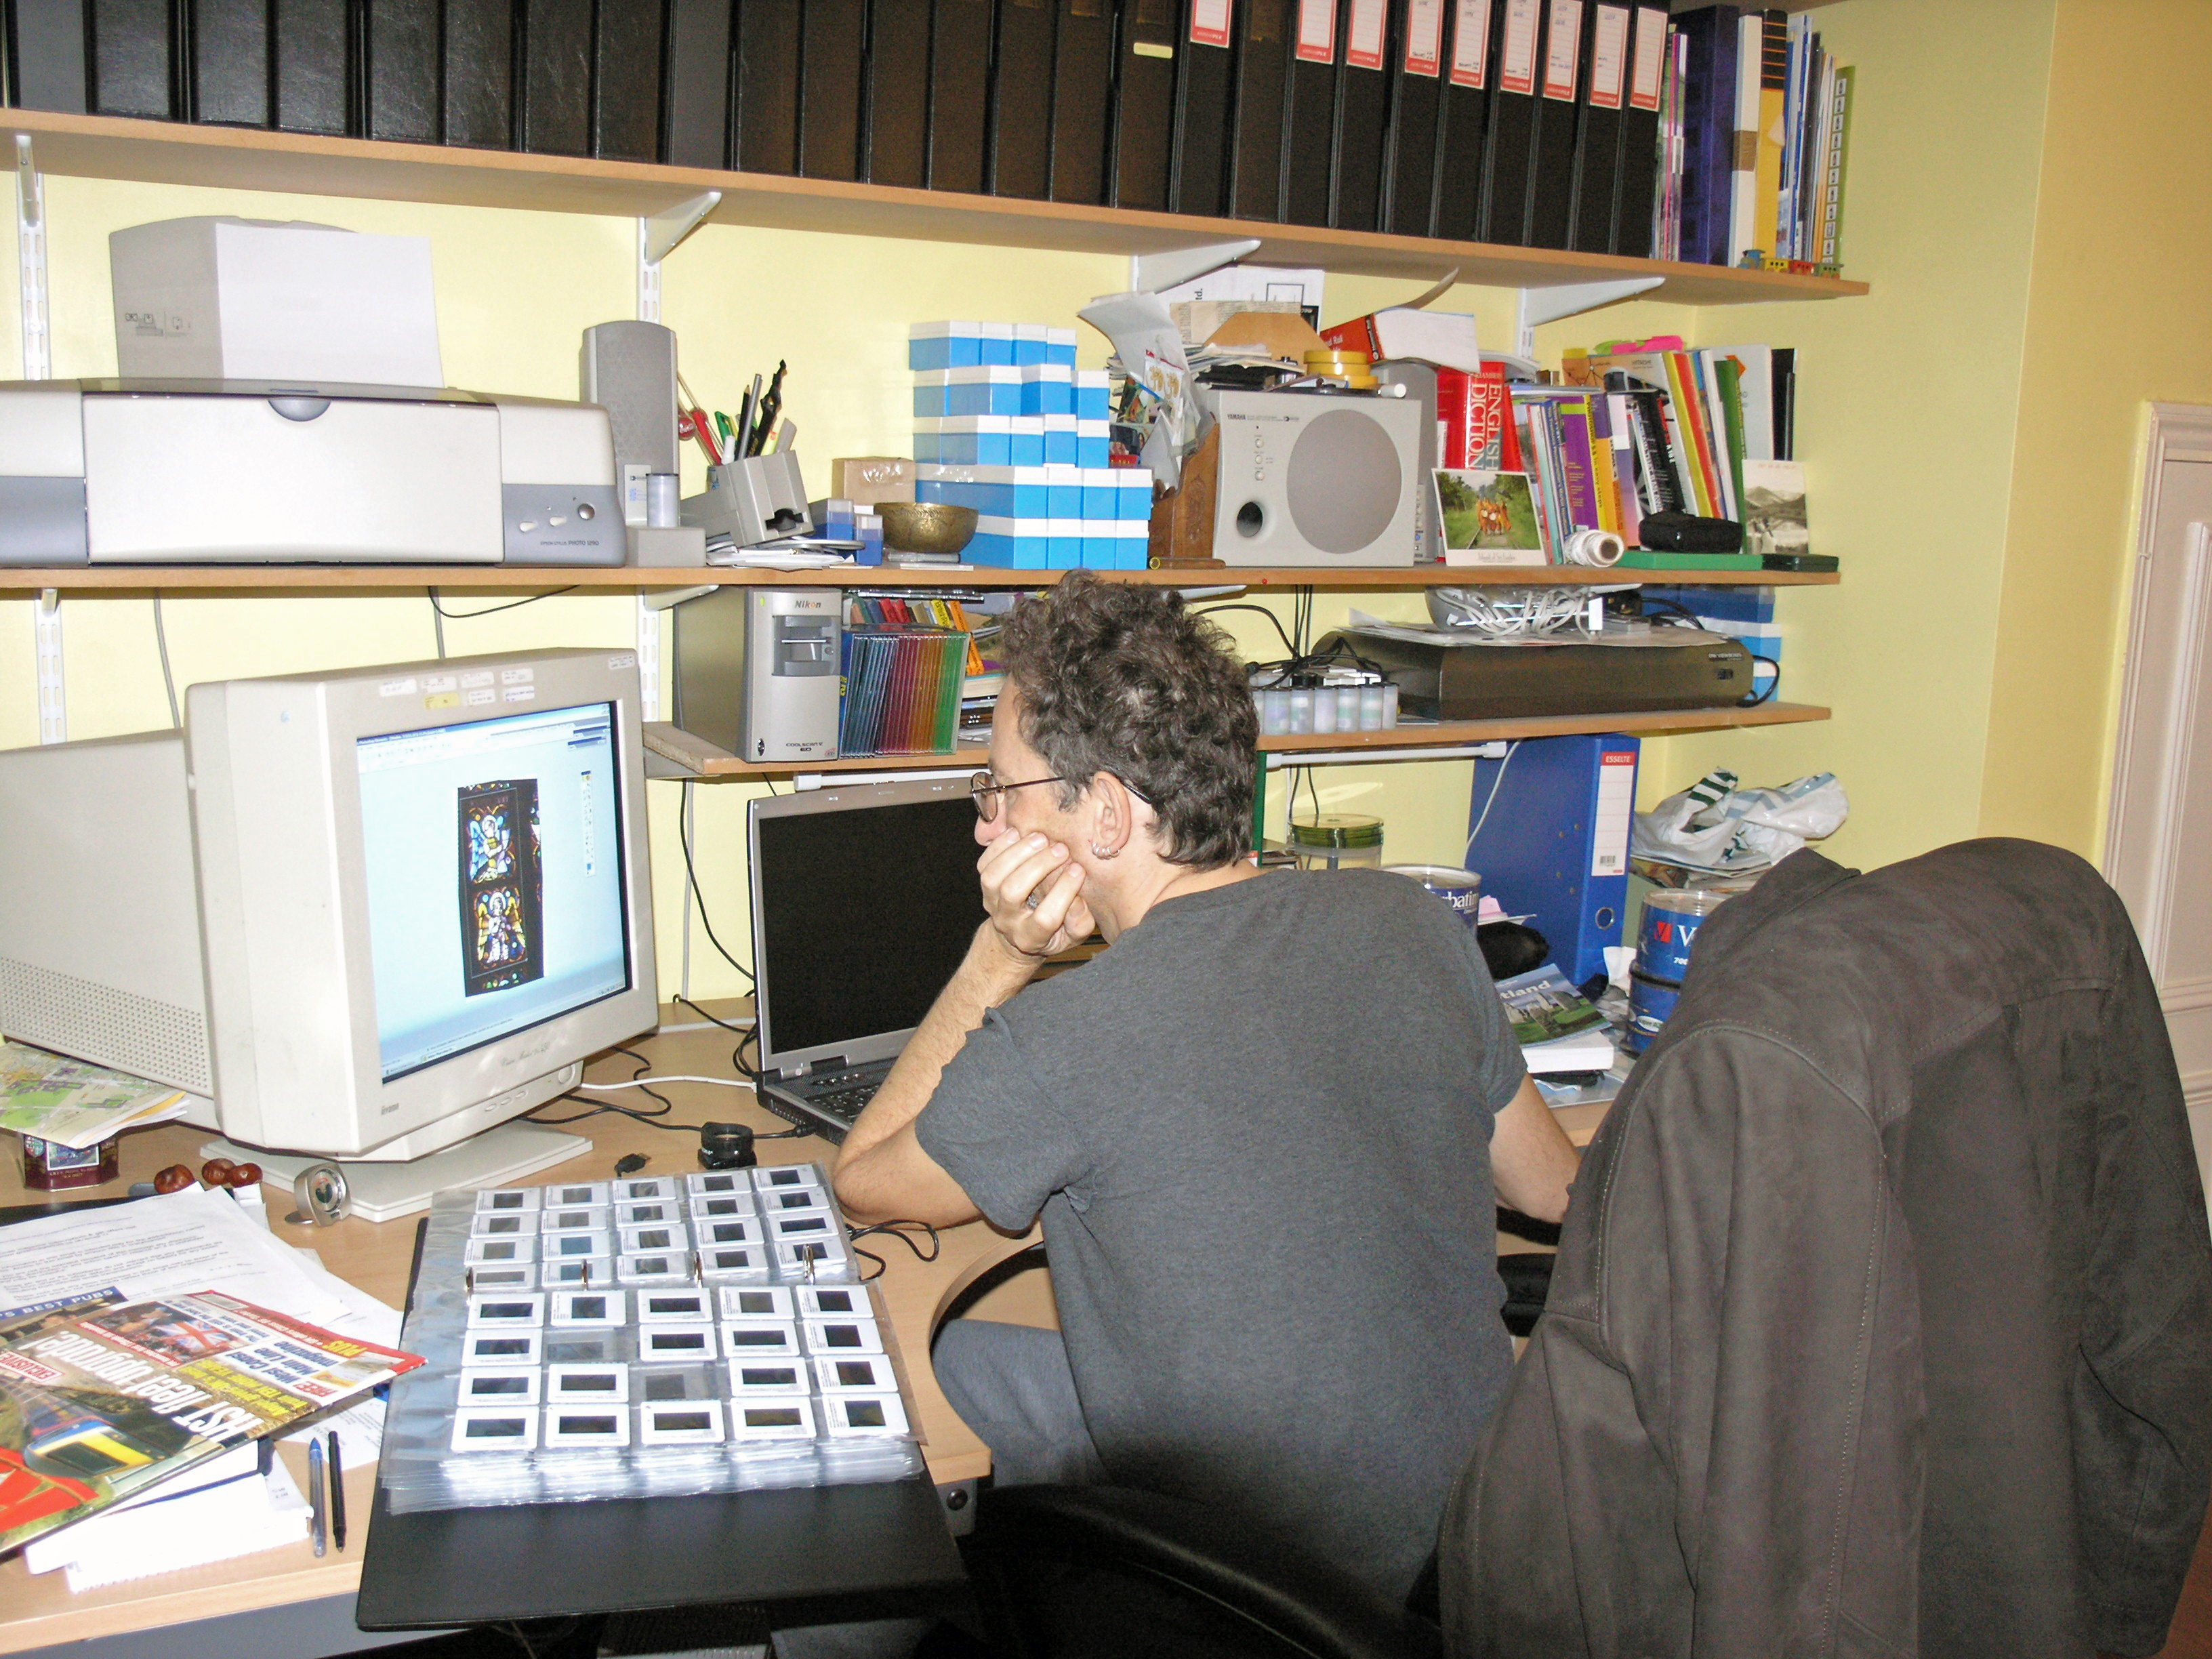 PA150179. Me at home in Inderwick. 19.10.2004